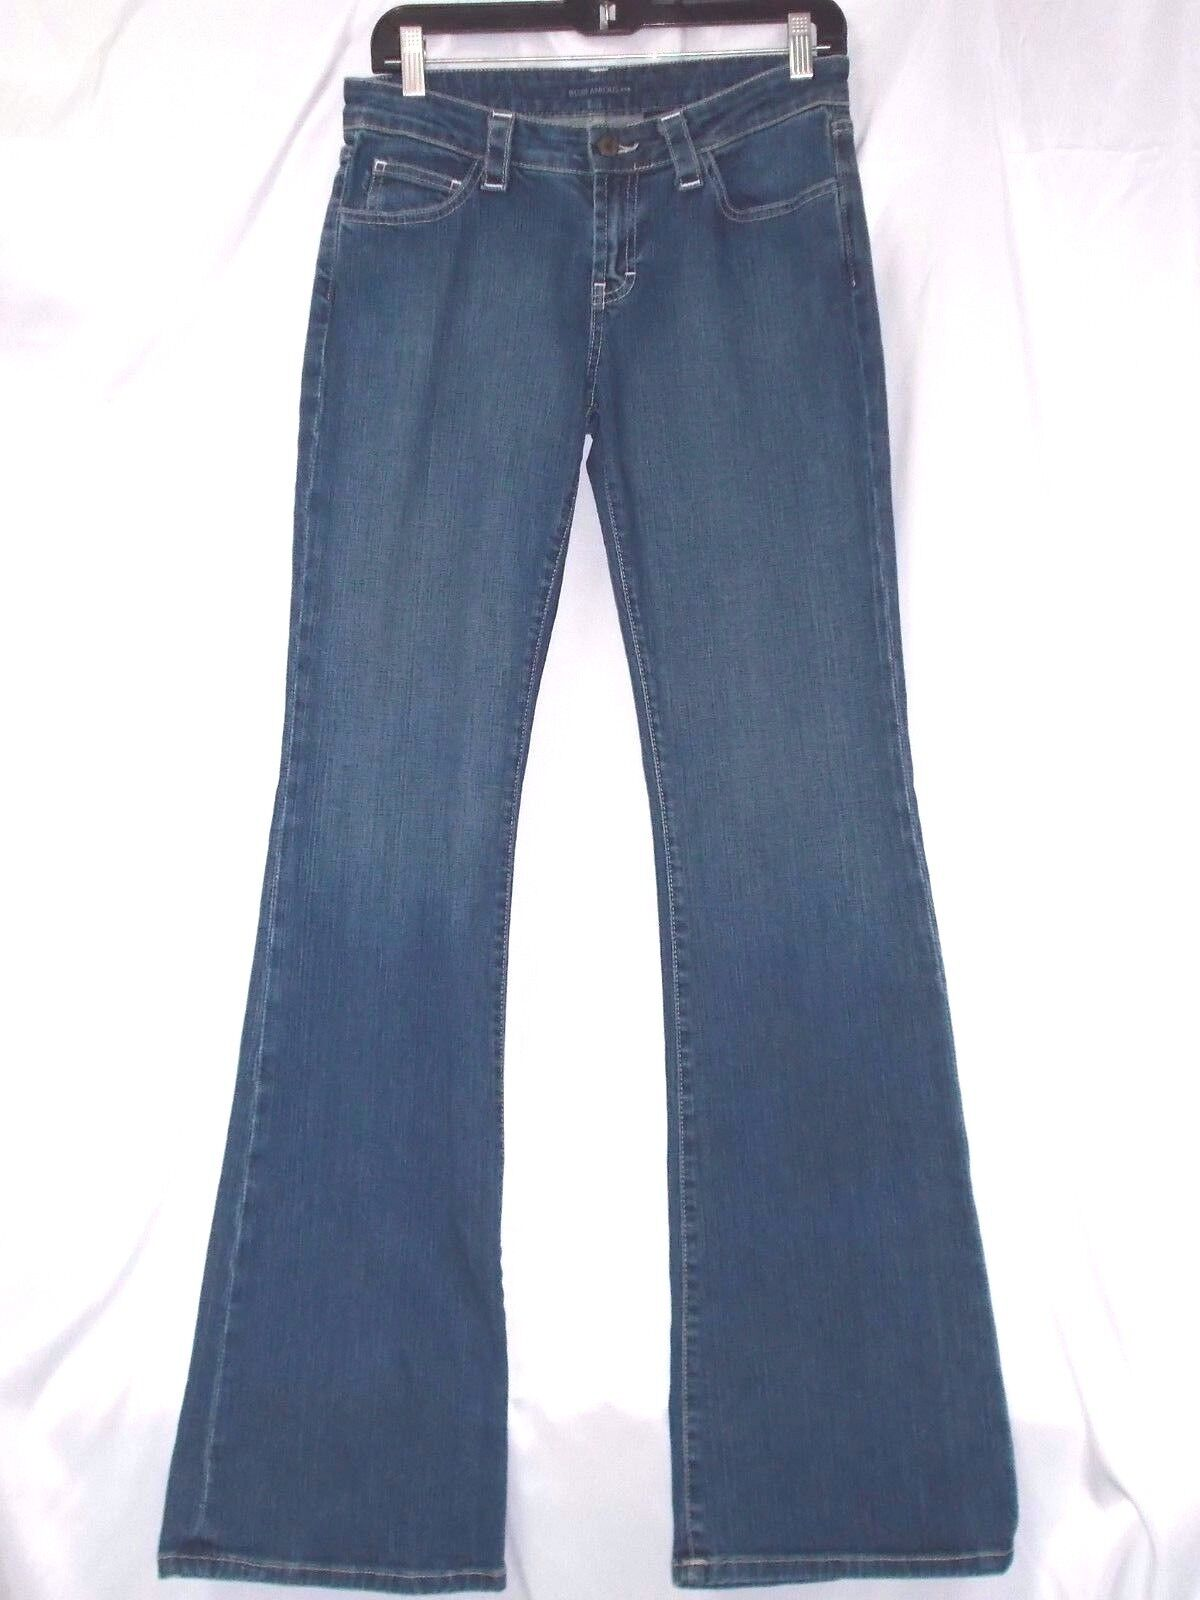 bluejeanious Jeans Indigo Size 29 (9 10) bluee  331 2 Inseam Embroidered  New